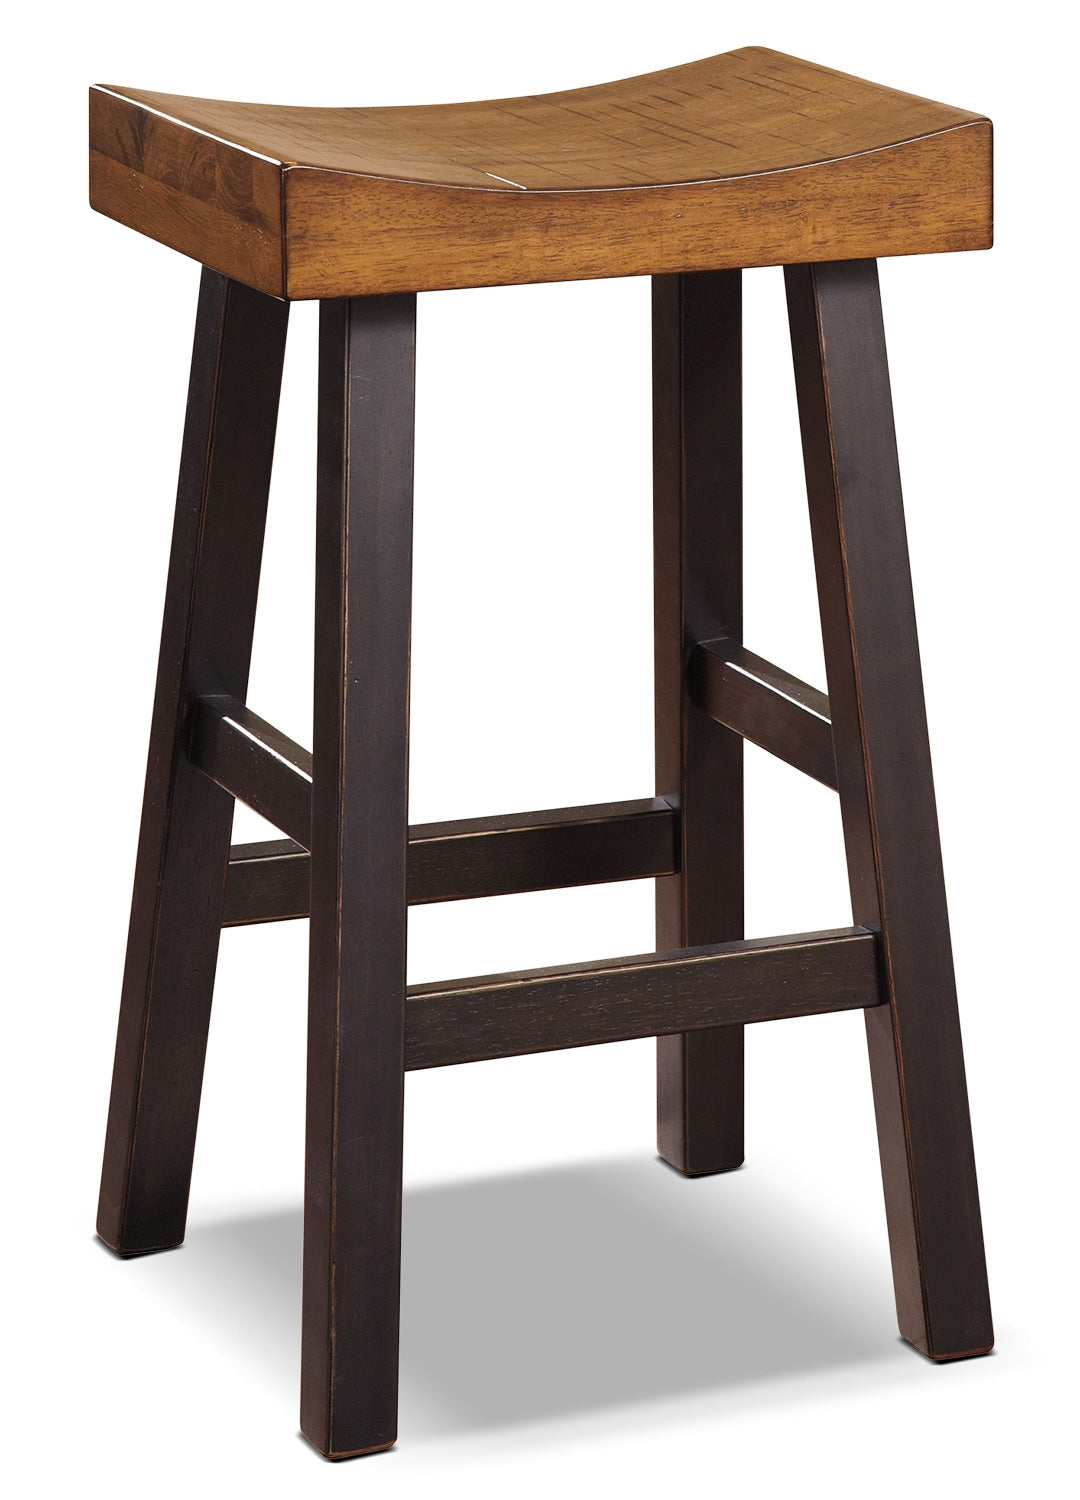 Terrific Glosco 30 Saddle Seat Bar Stool Evergreenethics Interior Chair Design Evergreenethicsorg